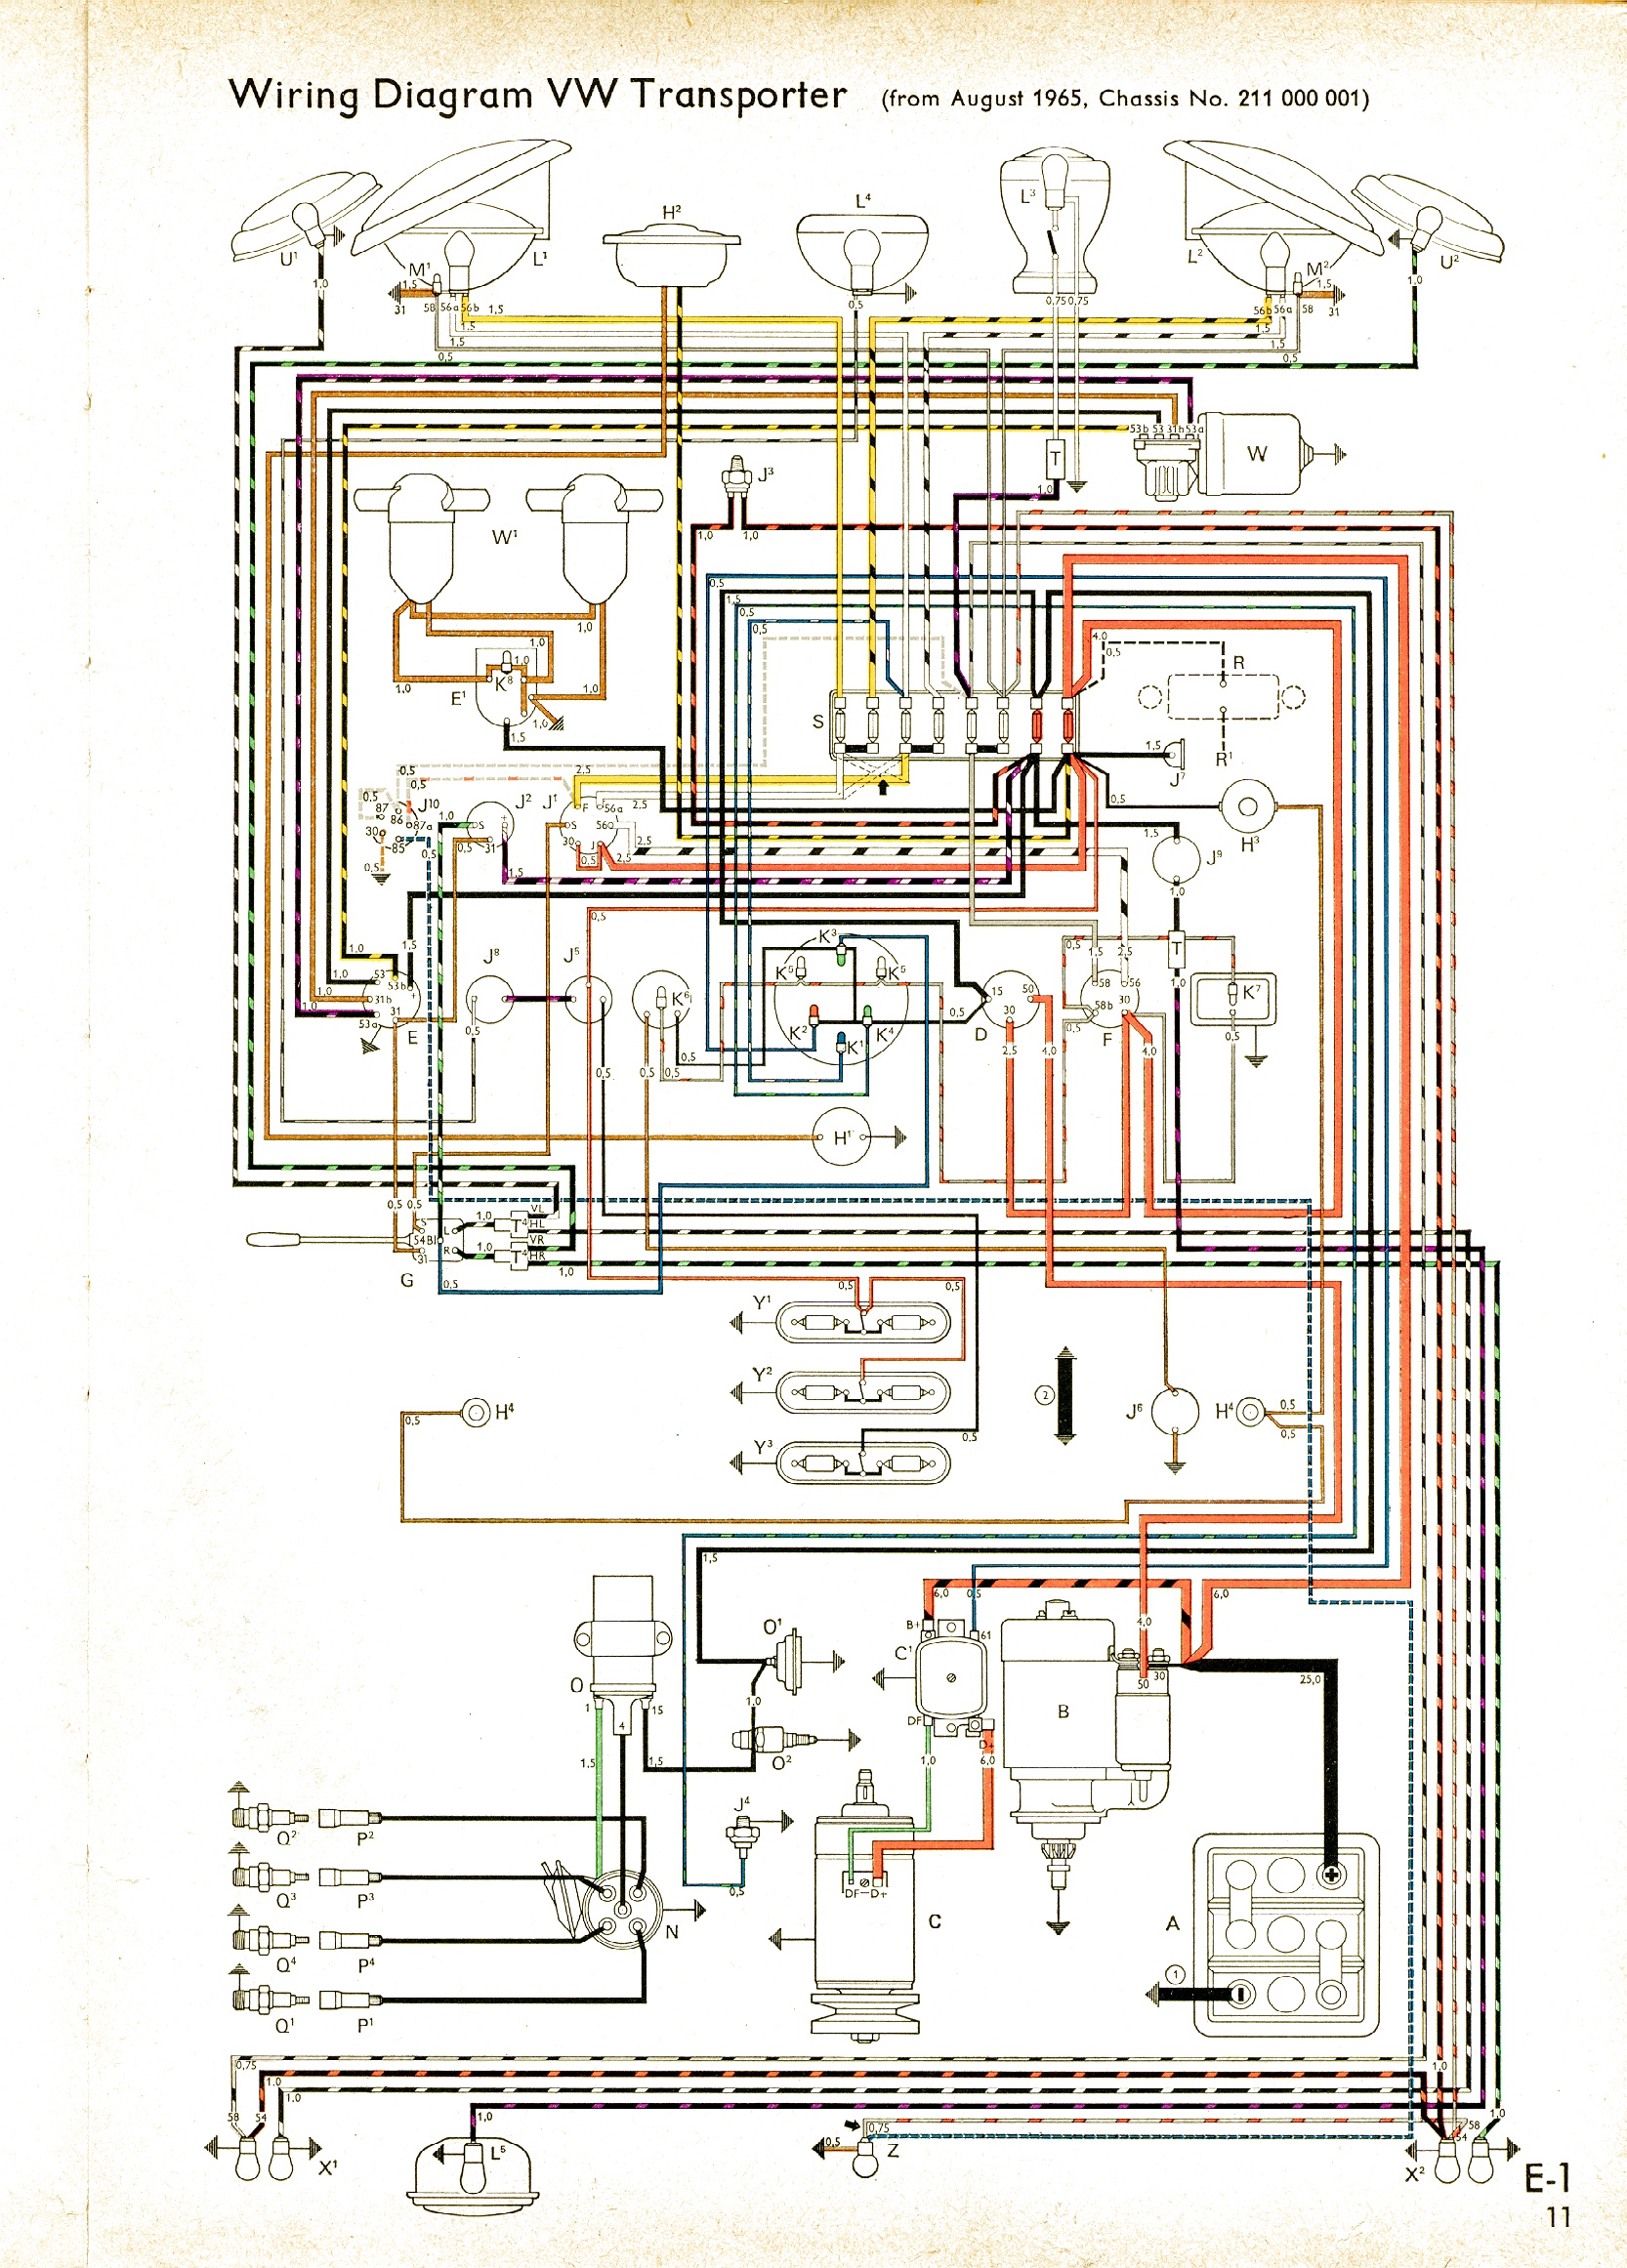 bus 65 2001 vw beetle wiring diagram 1964 vw beetle wiring diagram 2002 vw beetle wiring diagram at fashall.co